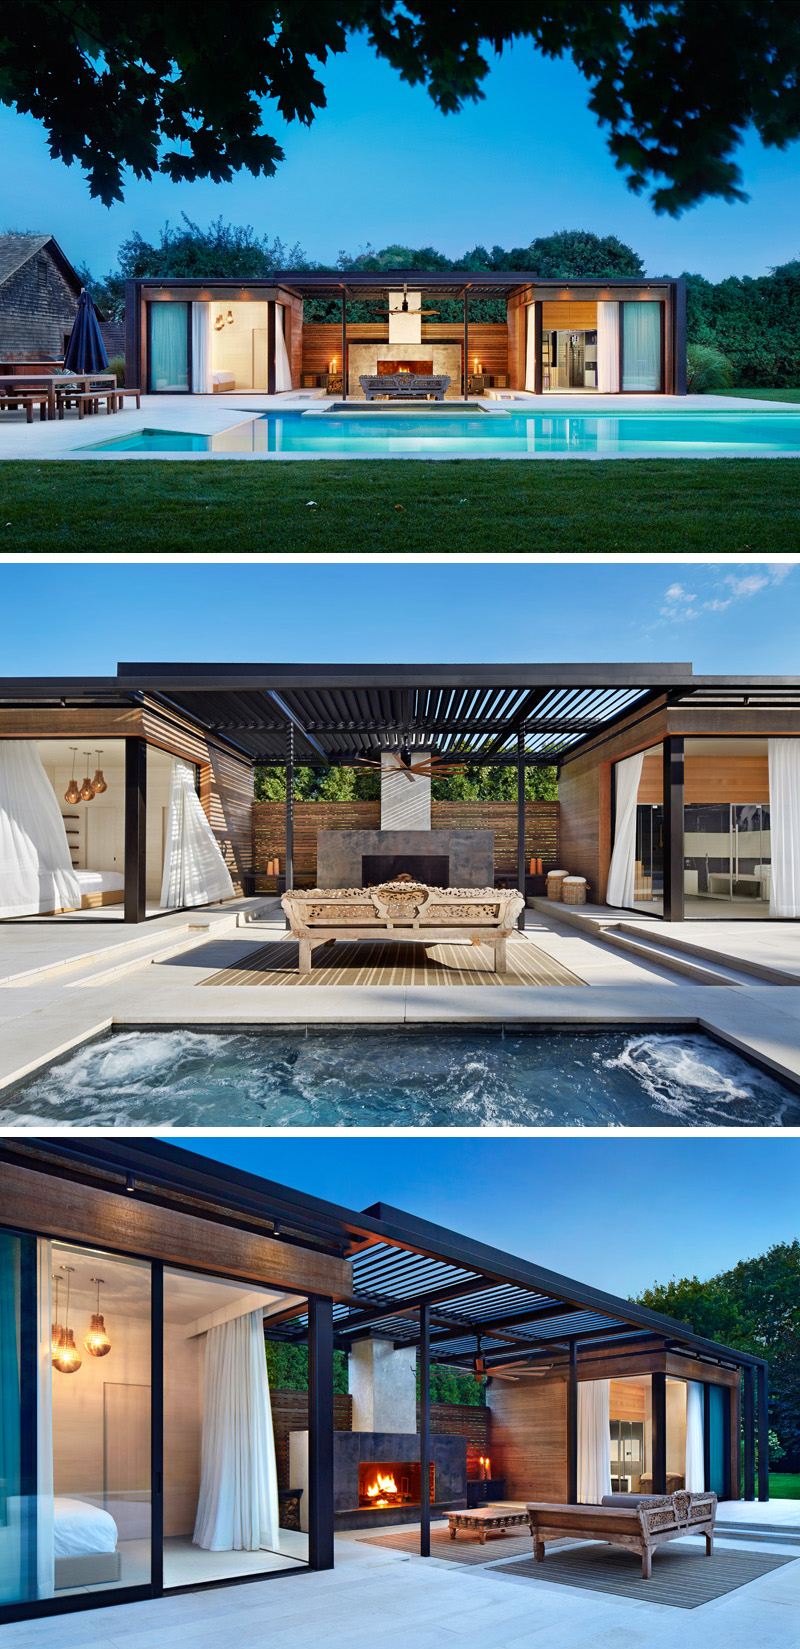 11 modern pool houses to get you inspired for summer for Outdoor pool house